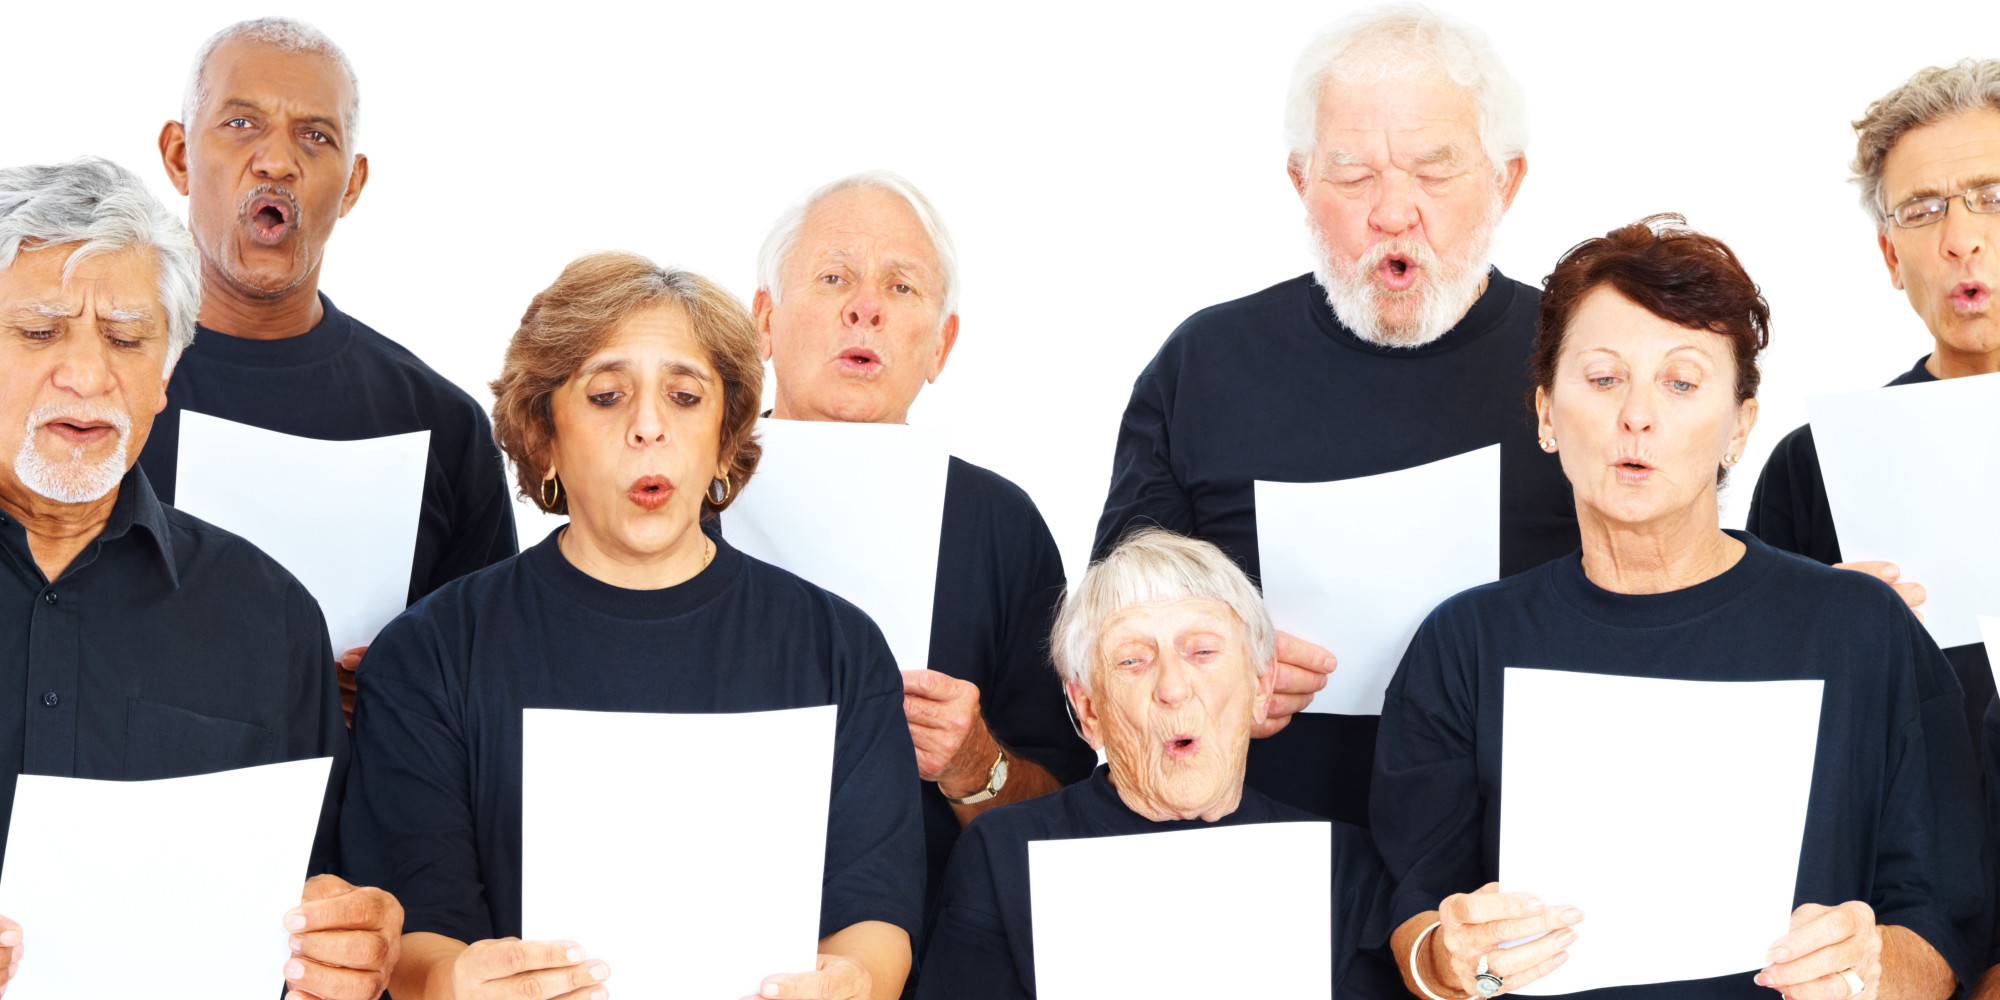 study to determine effects of singing in choirs on seniors